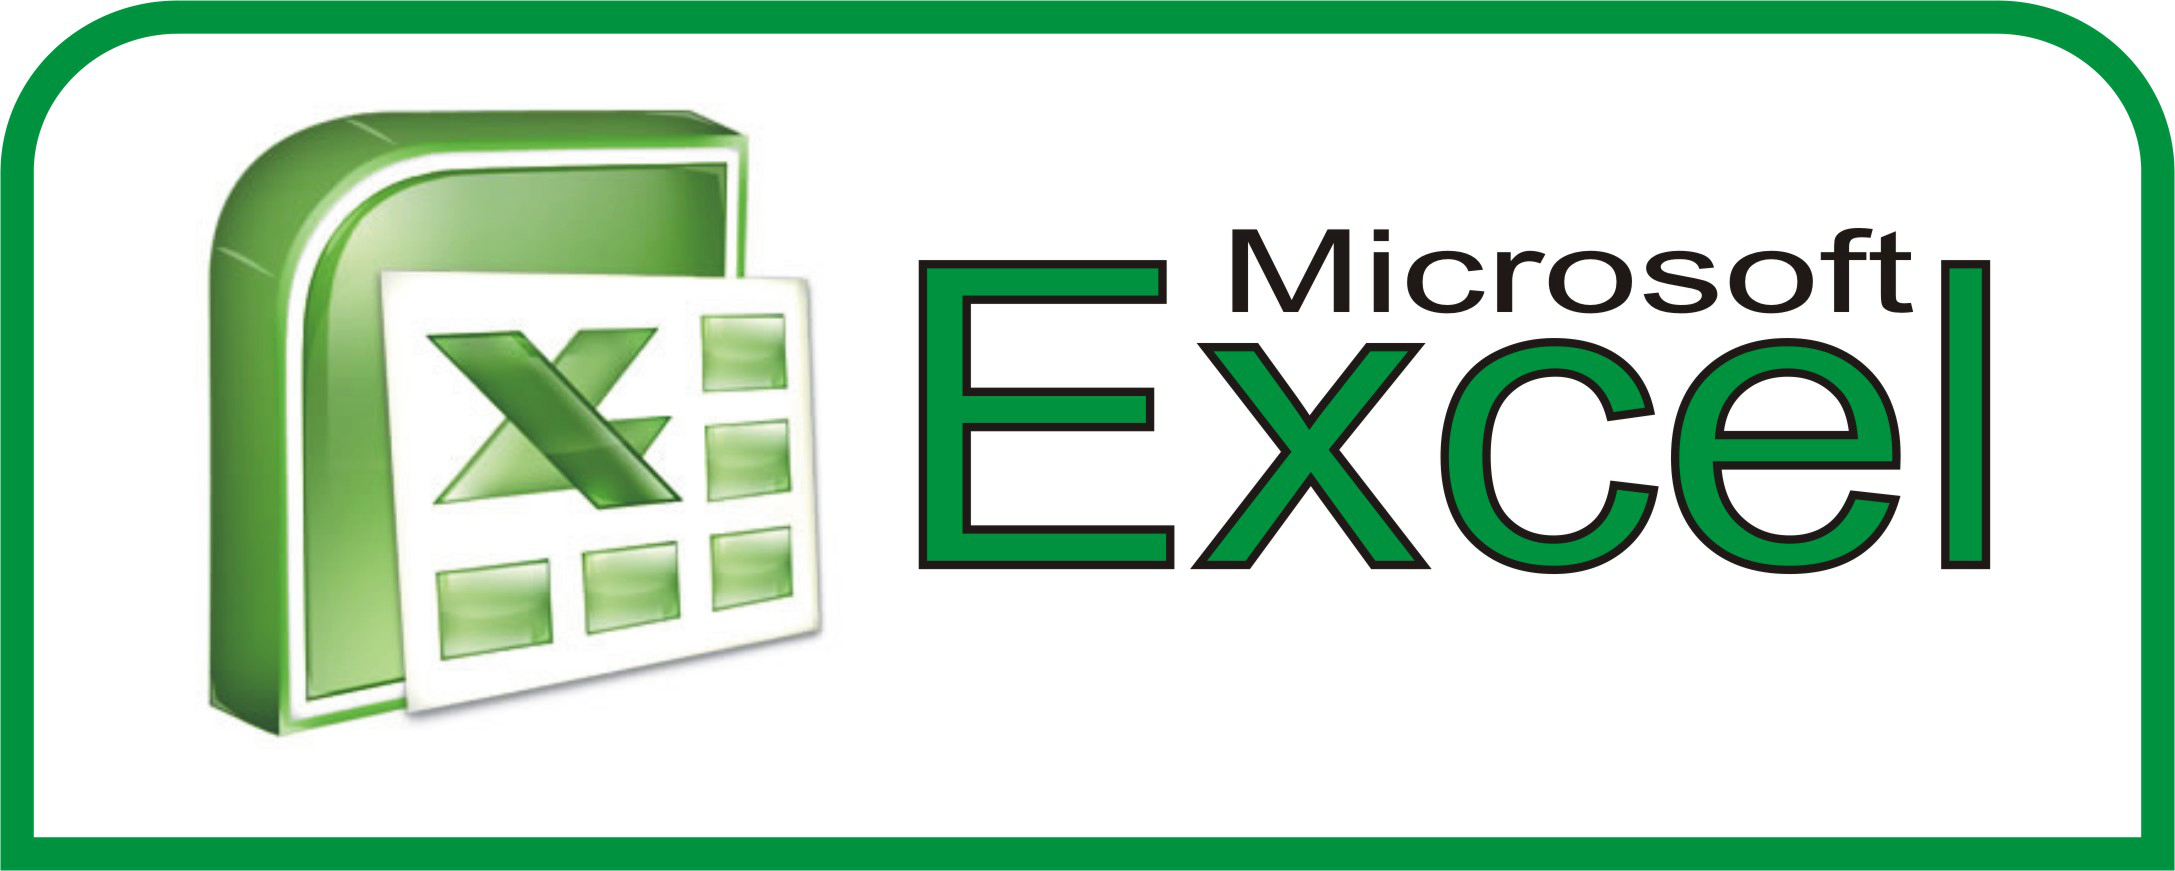 Ediblewildsus  Pleasing  Excel Shortcuts You Probably Didnt Know About  Techdissected With Interesting Division Sign In Excel Besides How To Convert Number To Text In Excel Furthermore Enabling Macros In Excel  With Awesome Excel Auto Adjust Row Height Also How To Download Excel In Addition Add Column Excel And How To Insert Checkbox In Excel  As Well As Excel Length Additionally How To Program In Excel From Techdissectedcom With Ediblewildsus  Interesting  Excel Shortcuts You Probably Didnt Know About  Techdissected With Awesome Division Sign In Excel Besides How To Convert Number To Text In Excel Furthermore Enabling Macros In Excel  And Pleasing Excel Auto Adjust Row Height Also How To Download Excel In Addition Add Column Excel From Techdissectedcom